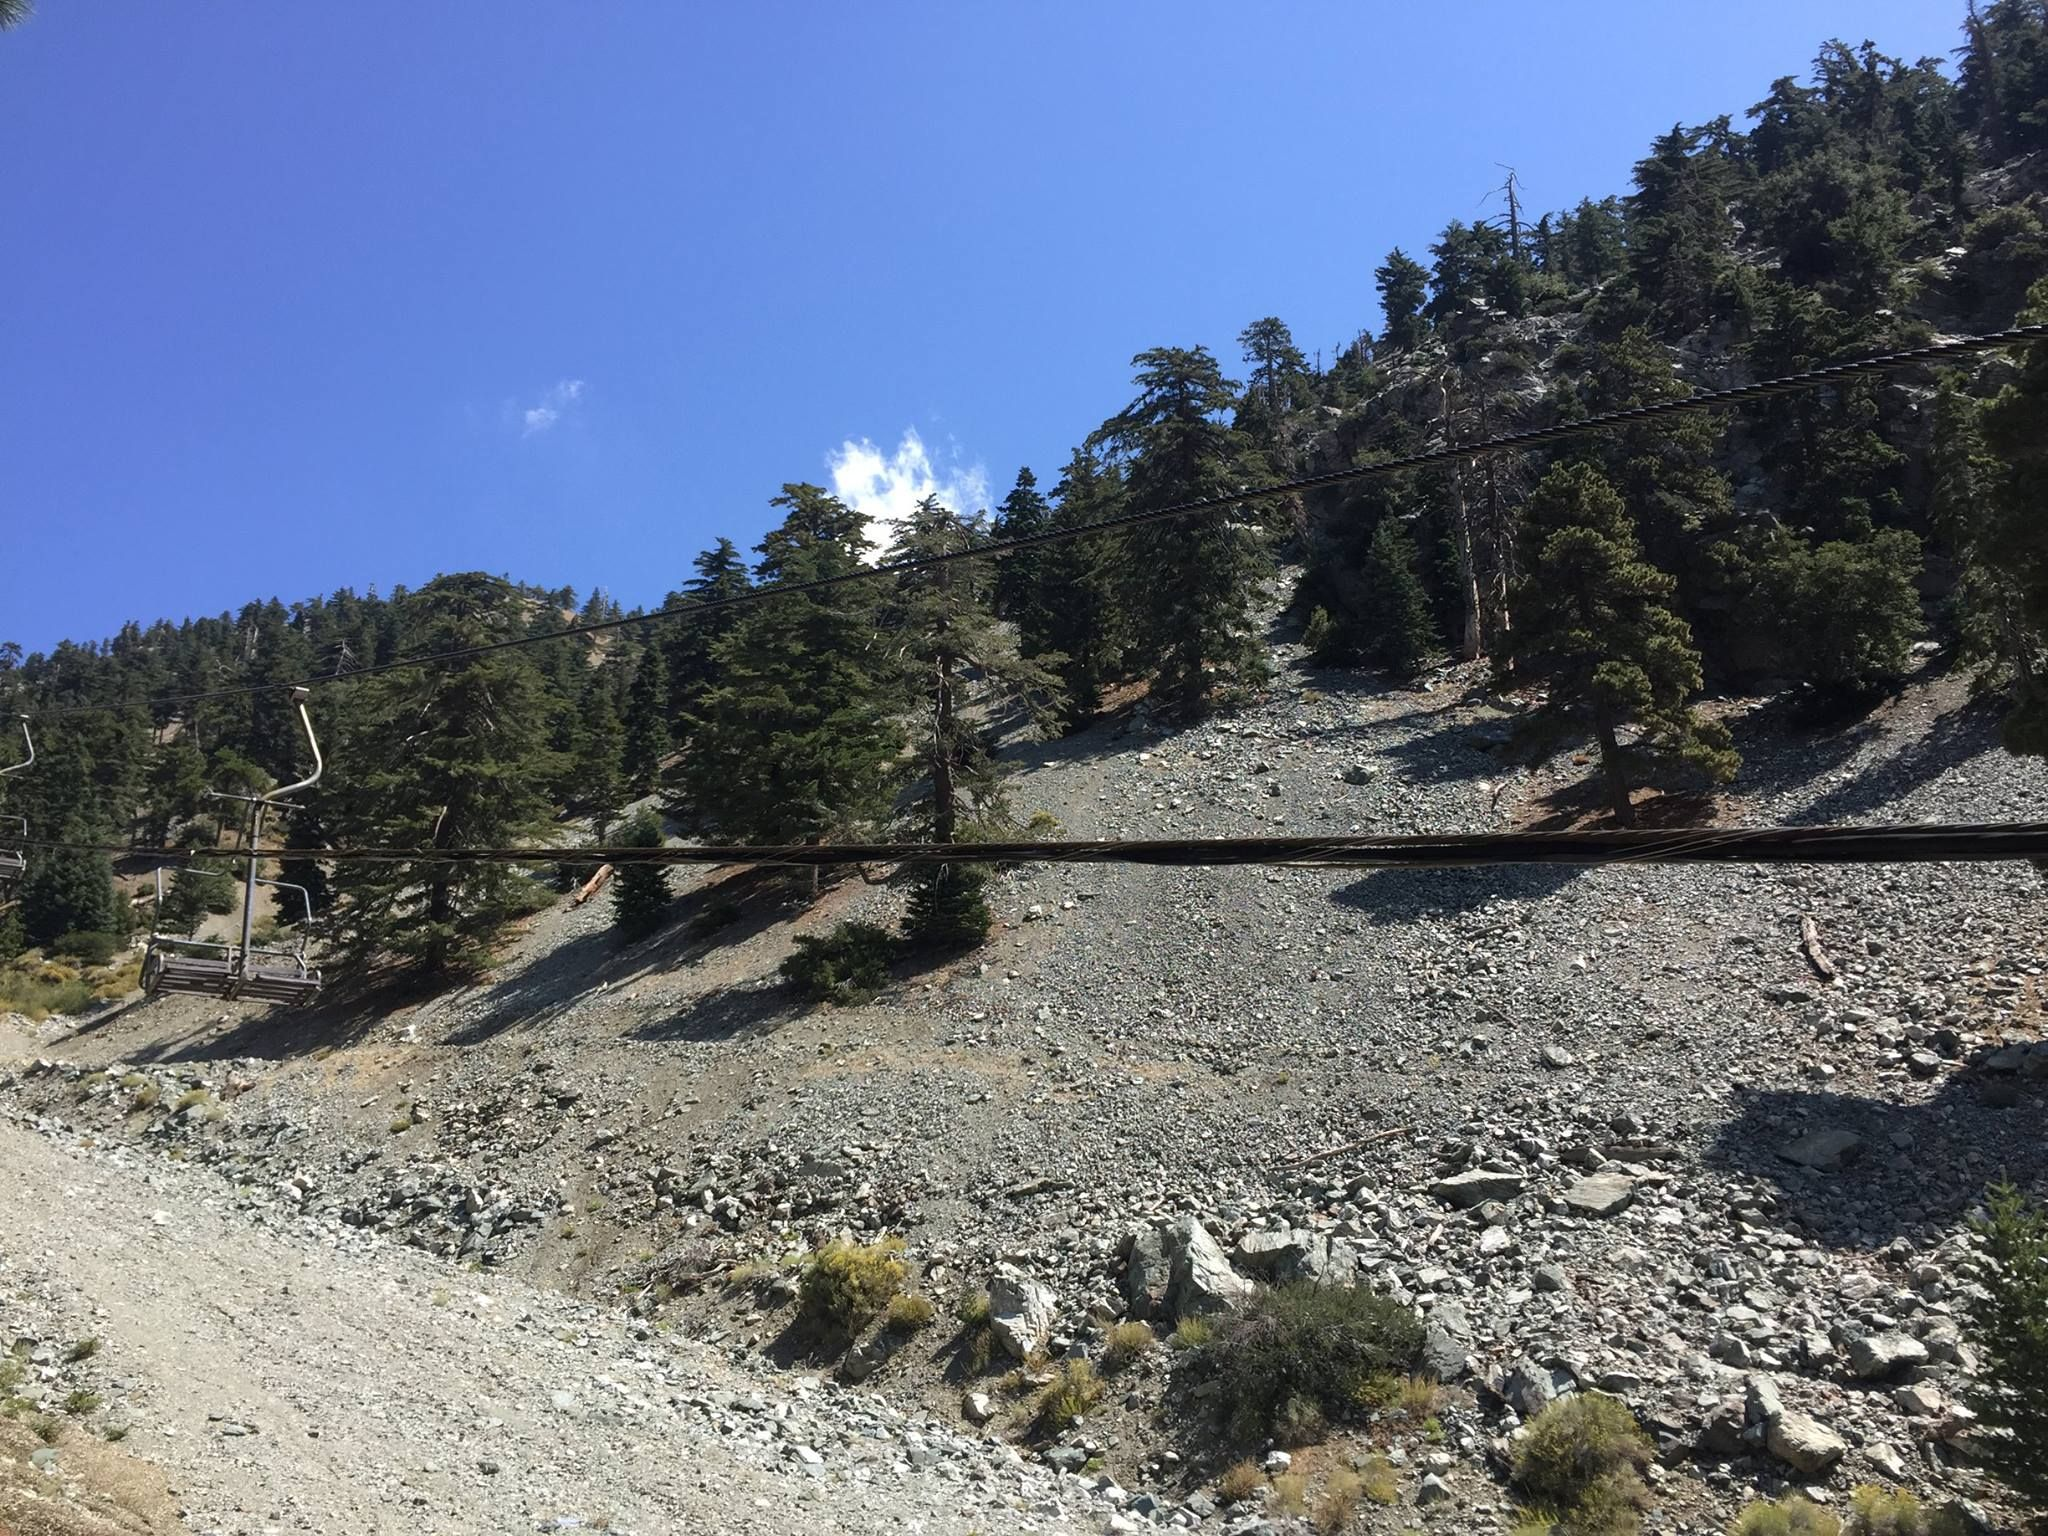 Nature The Mt Baldy Ski Lifts Less Than 90 Minutes From Downtown